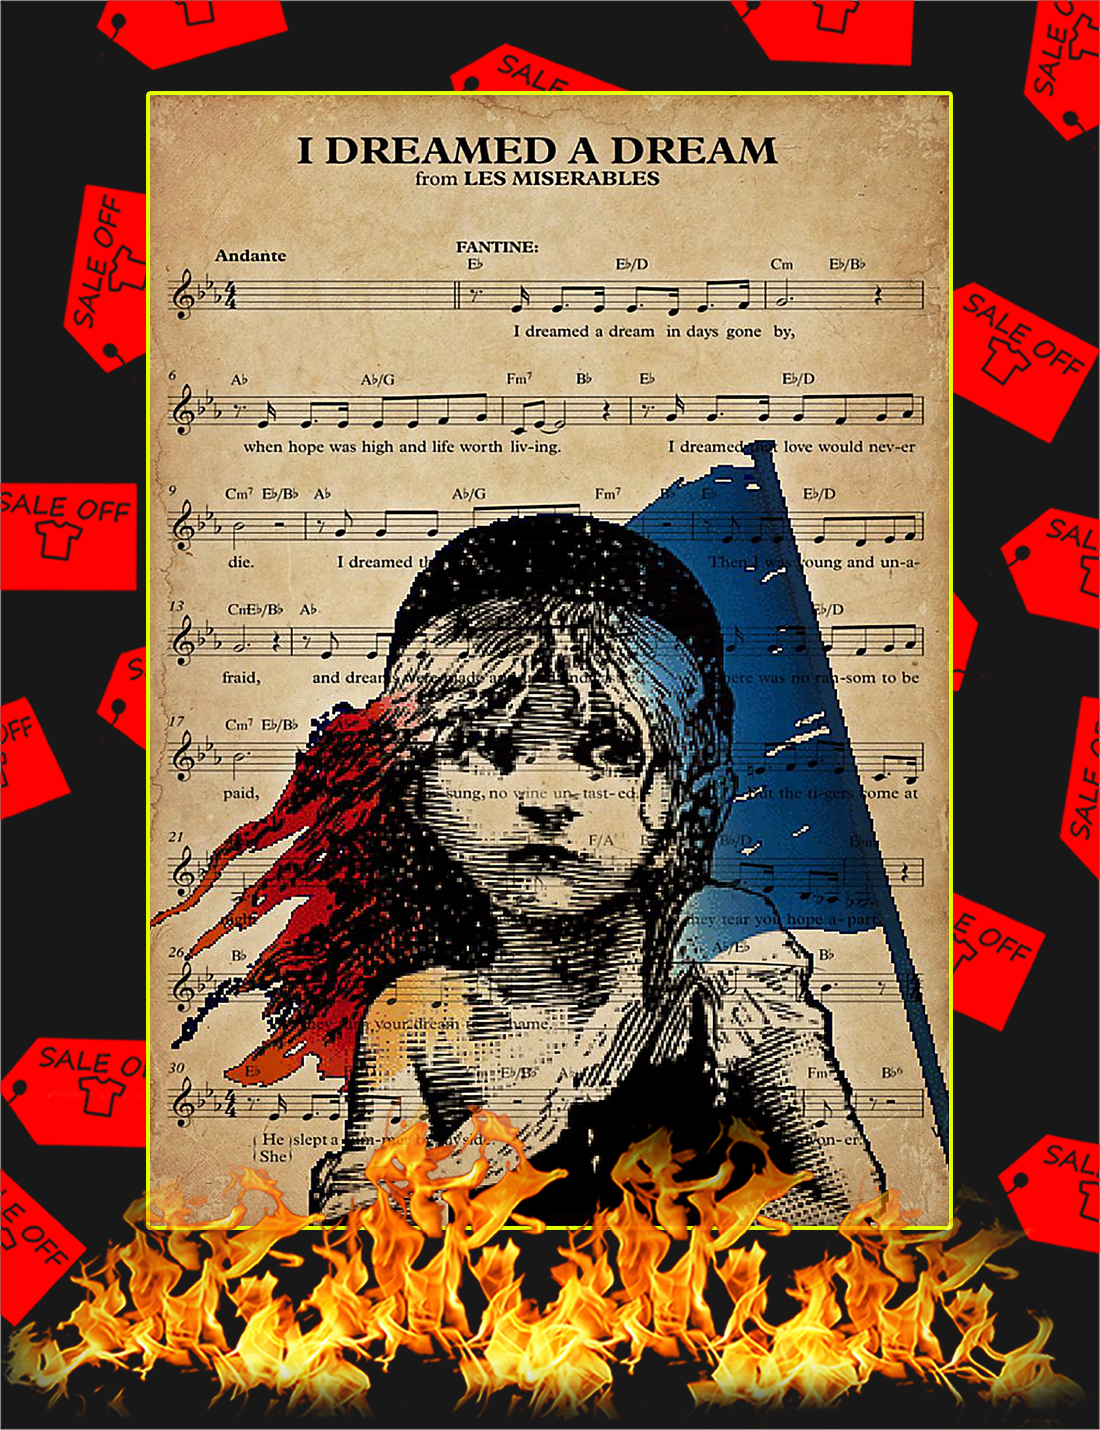 I dreamed a dream from les miserables poster